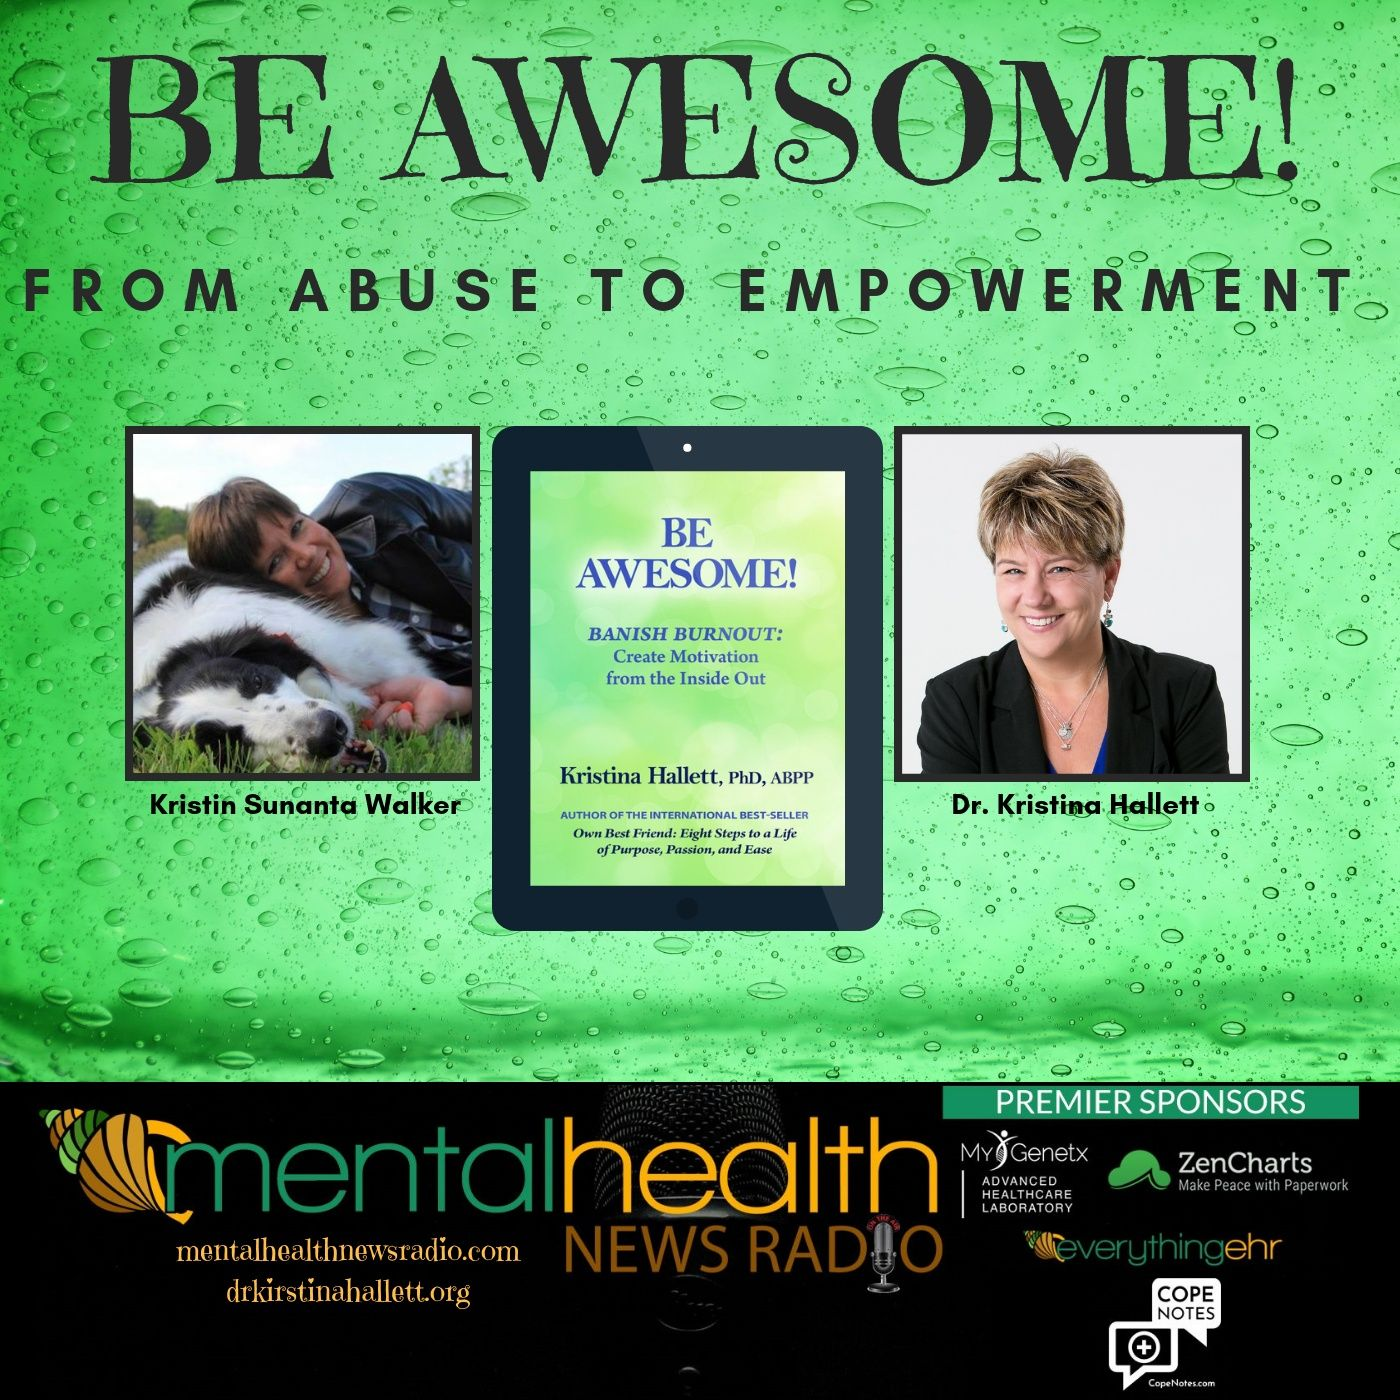 Mental Health News Radio - Be Awesome: From Abuse to Empowerment with Dr. Kristina Hallett